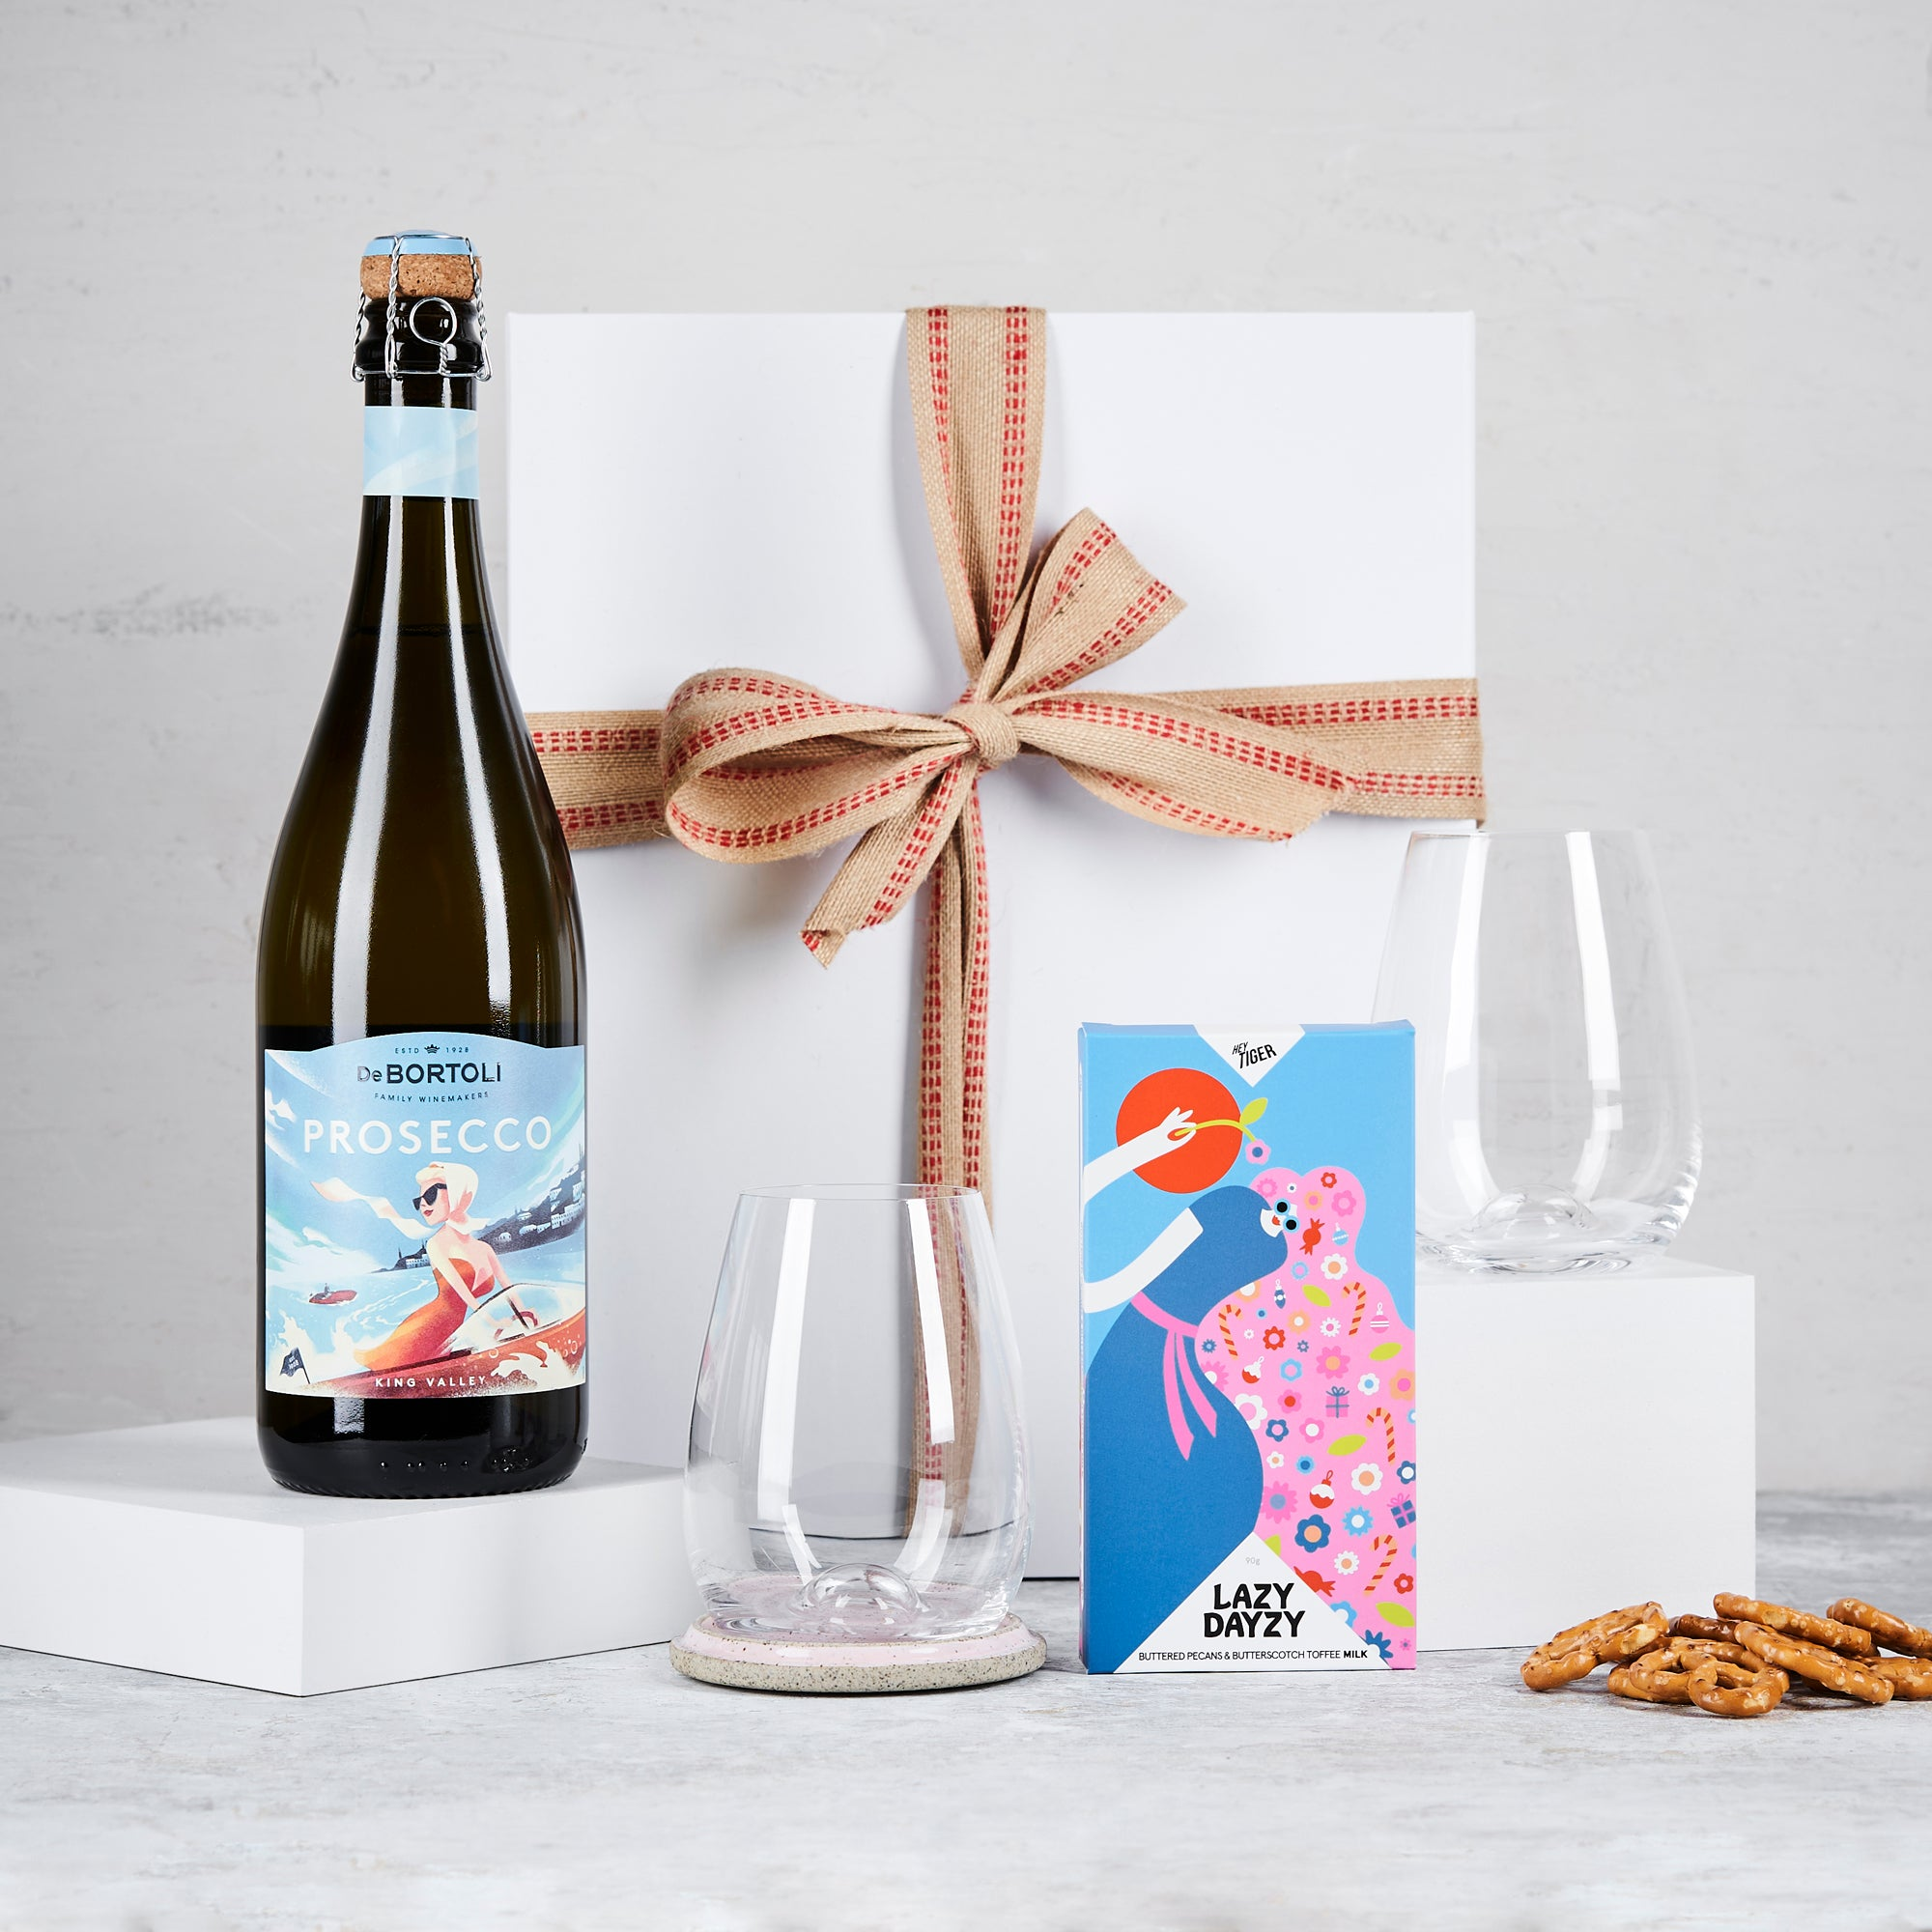 Prosecco For Two Hamper